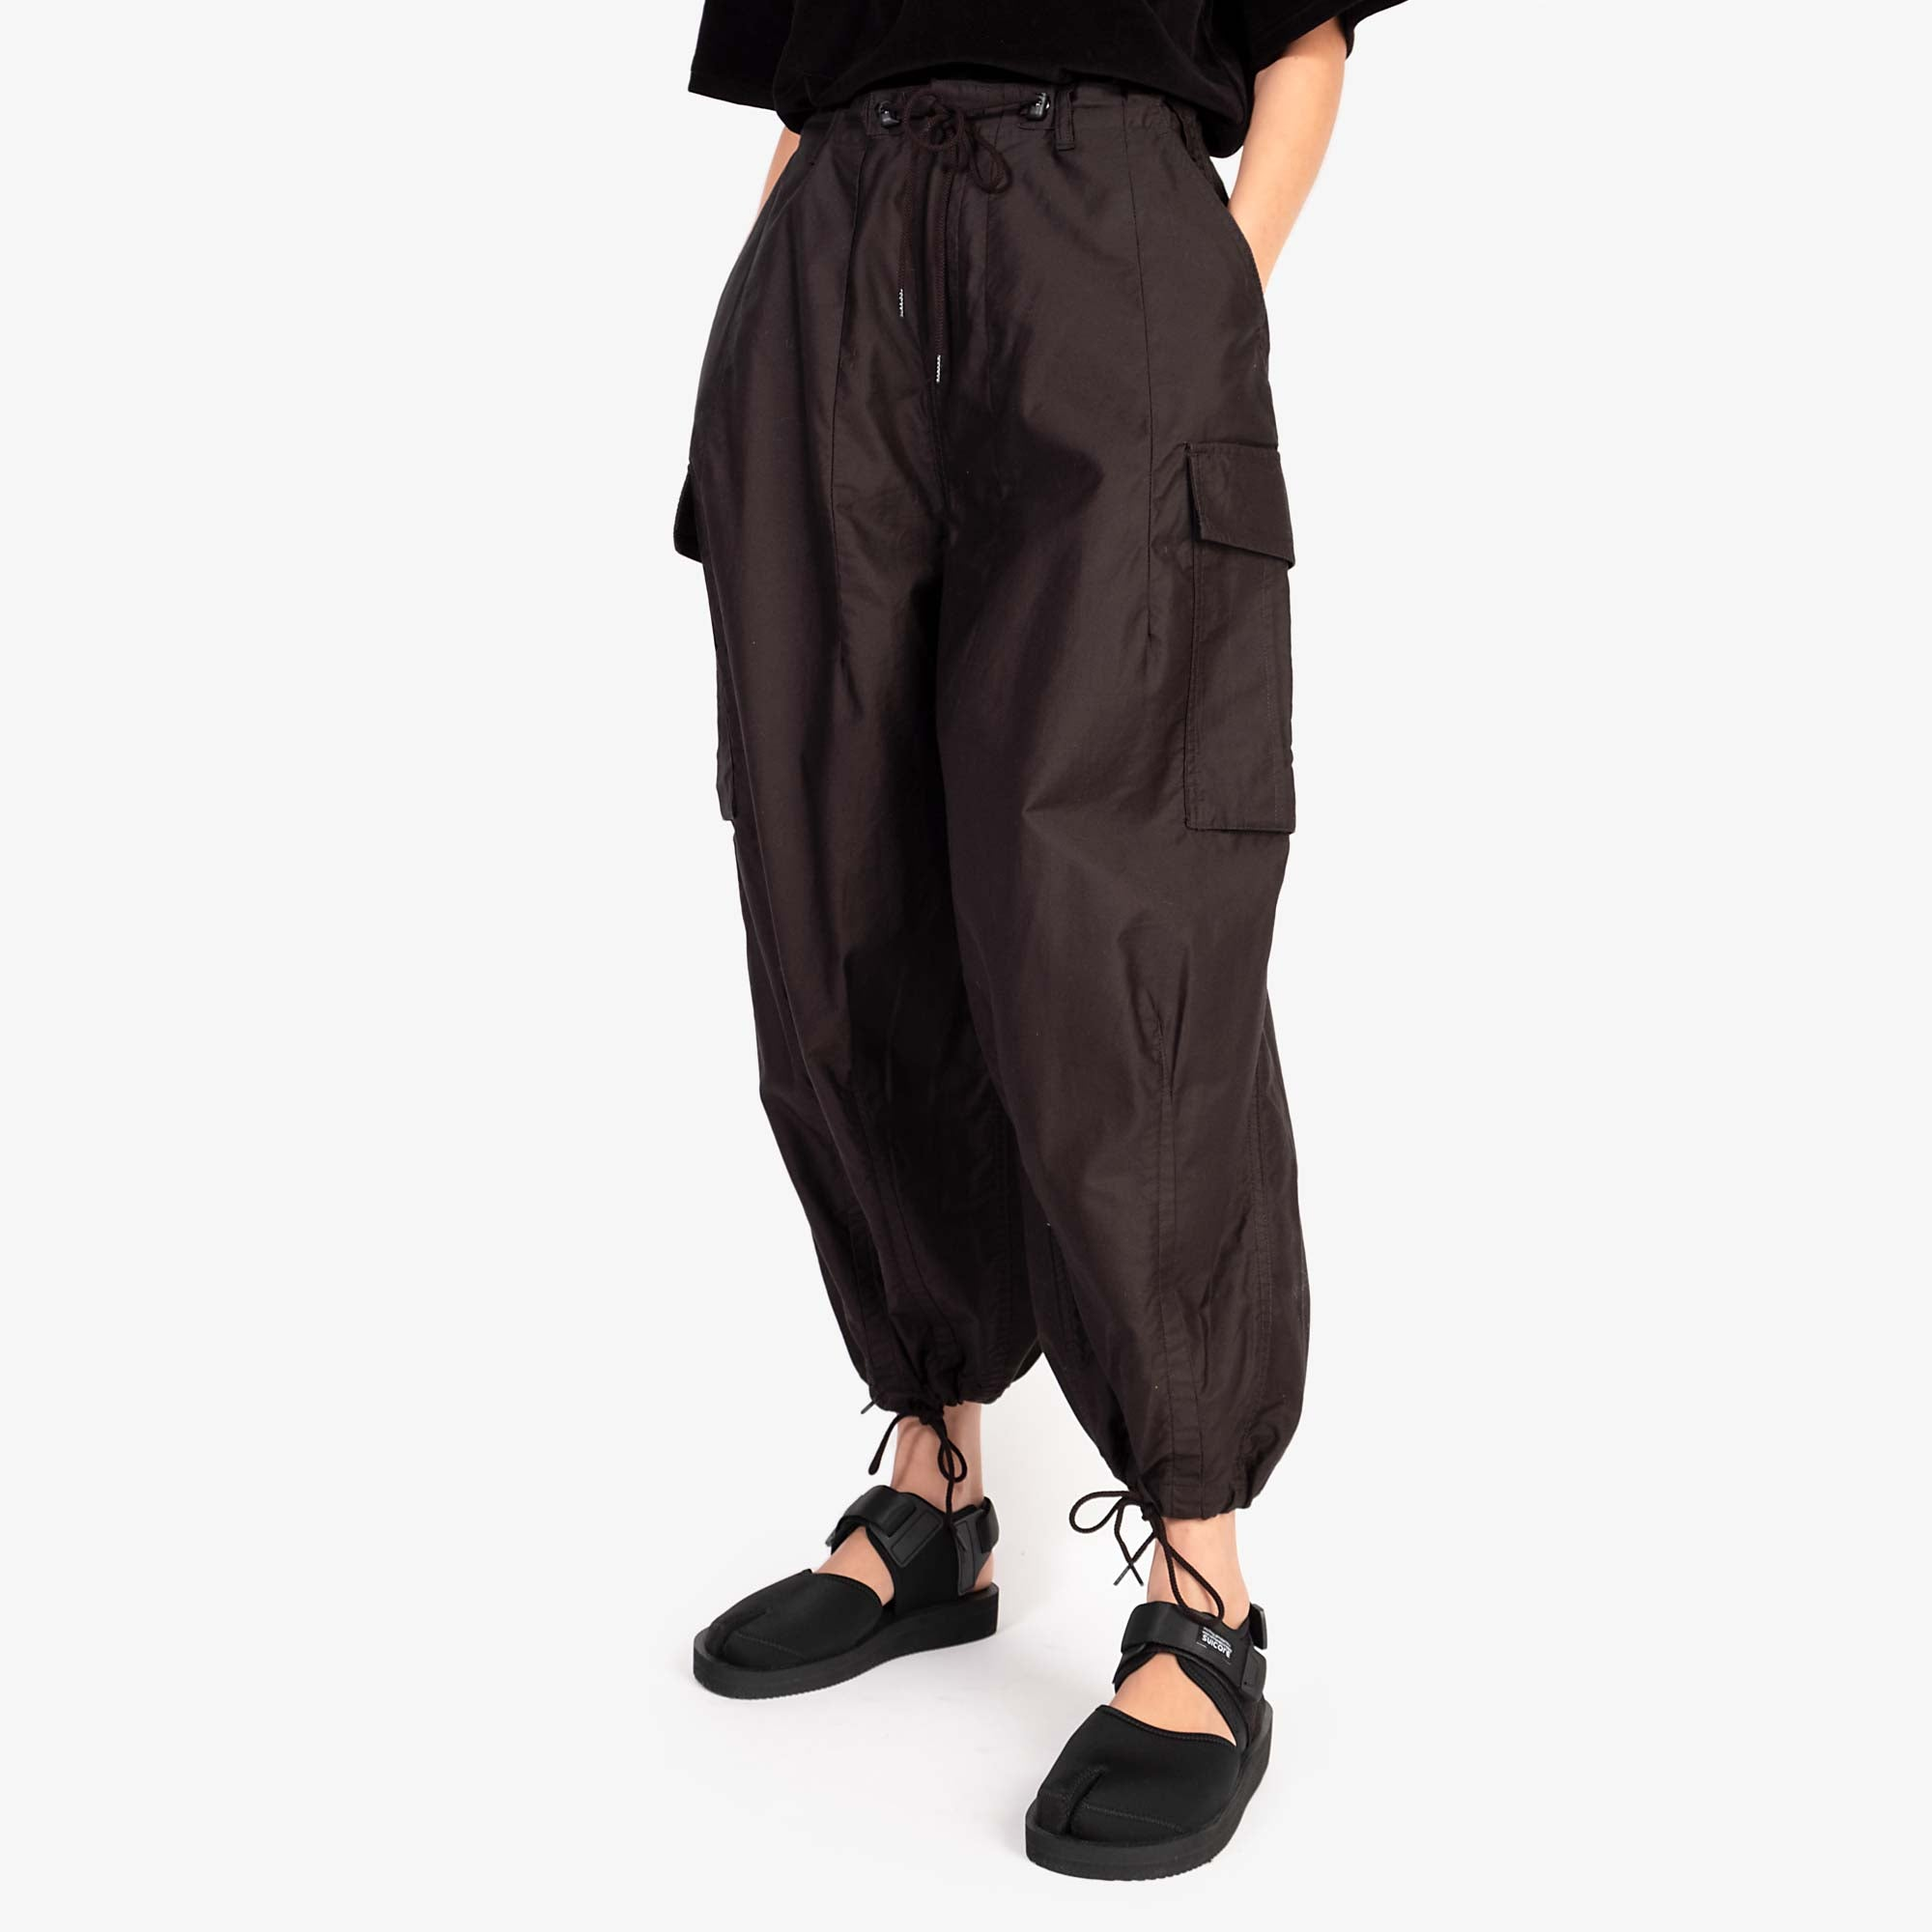 Needles W' H.D. BDU Pant - Black 5